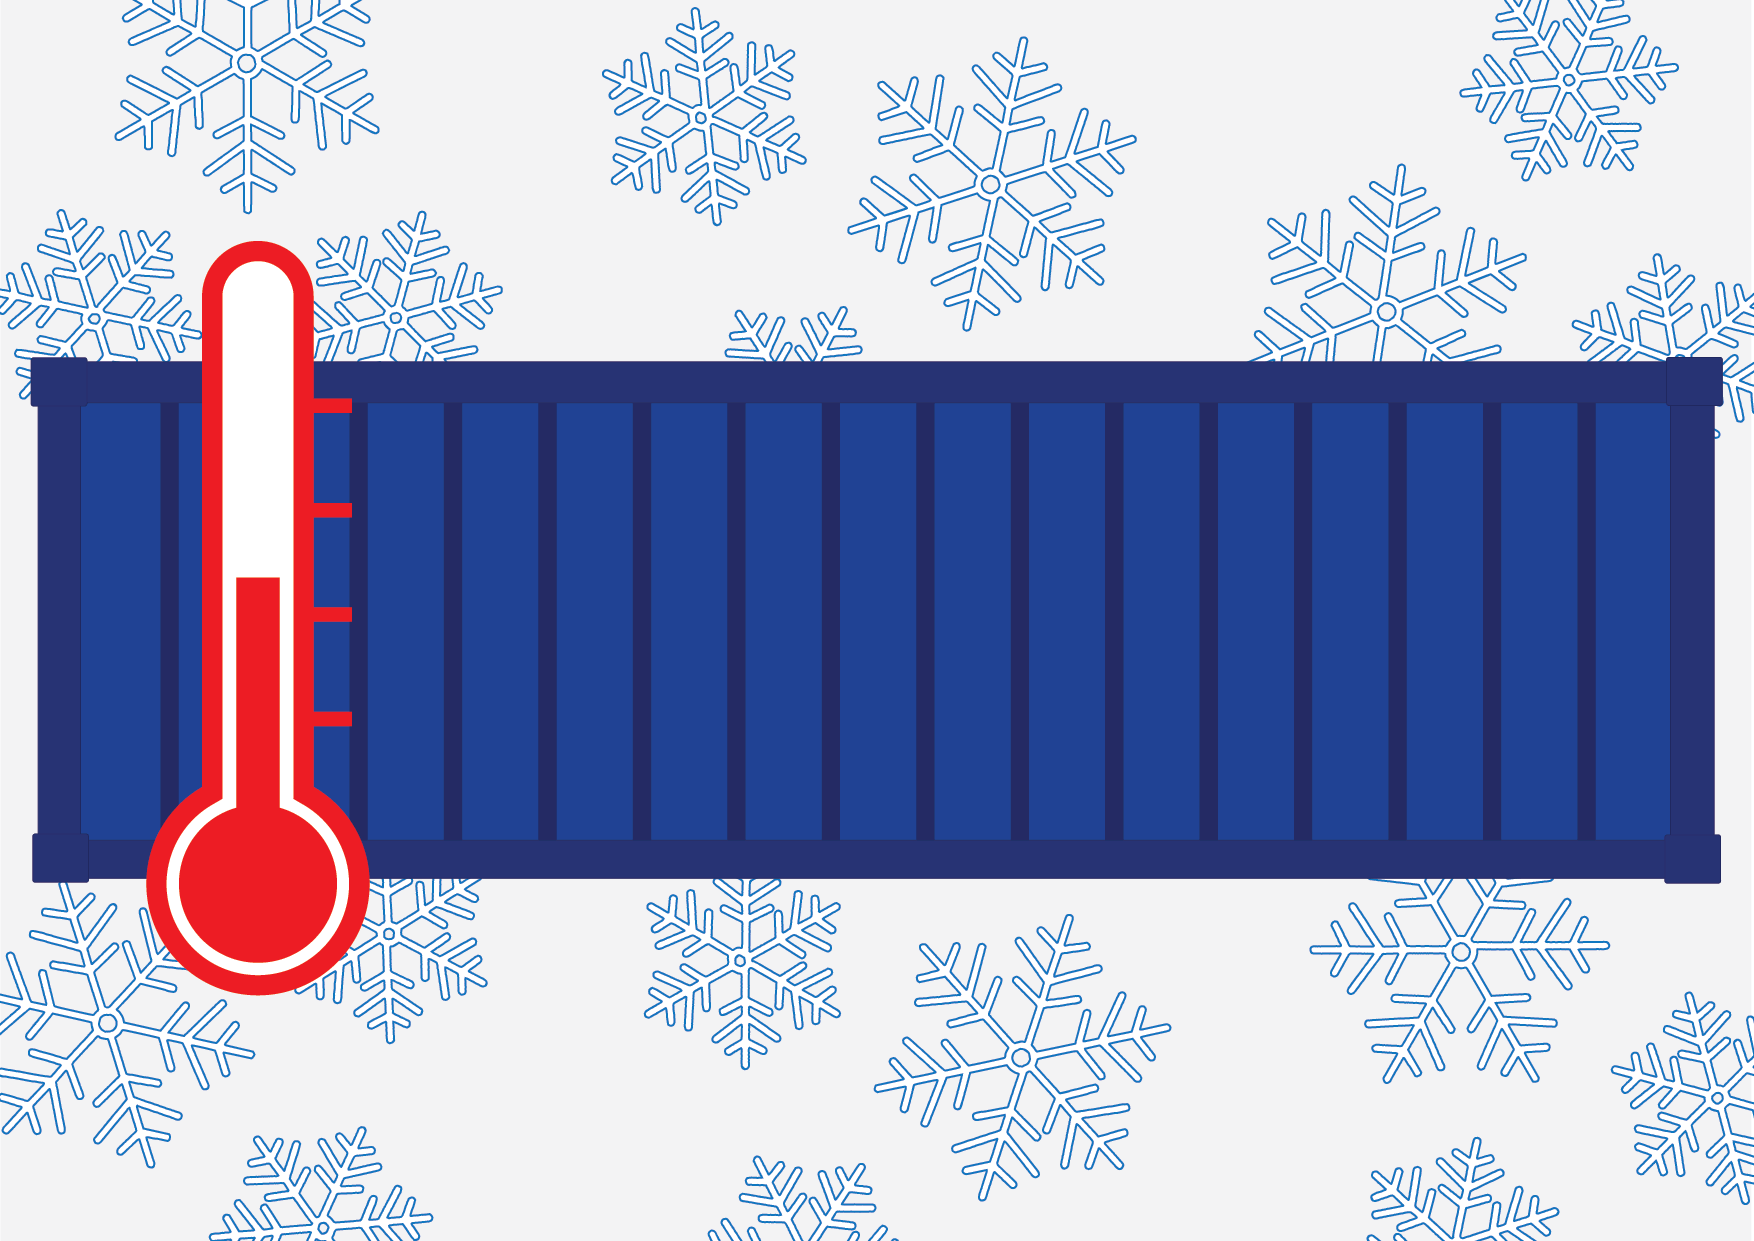 Shipping container graphic with thermometer